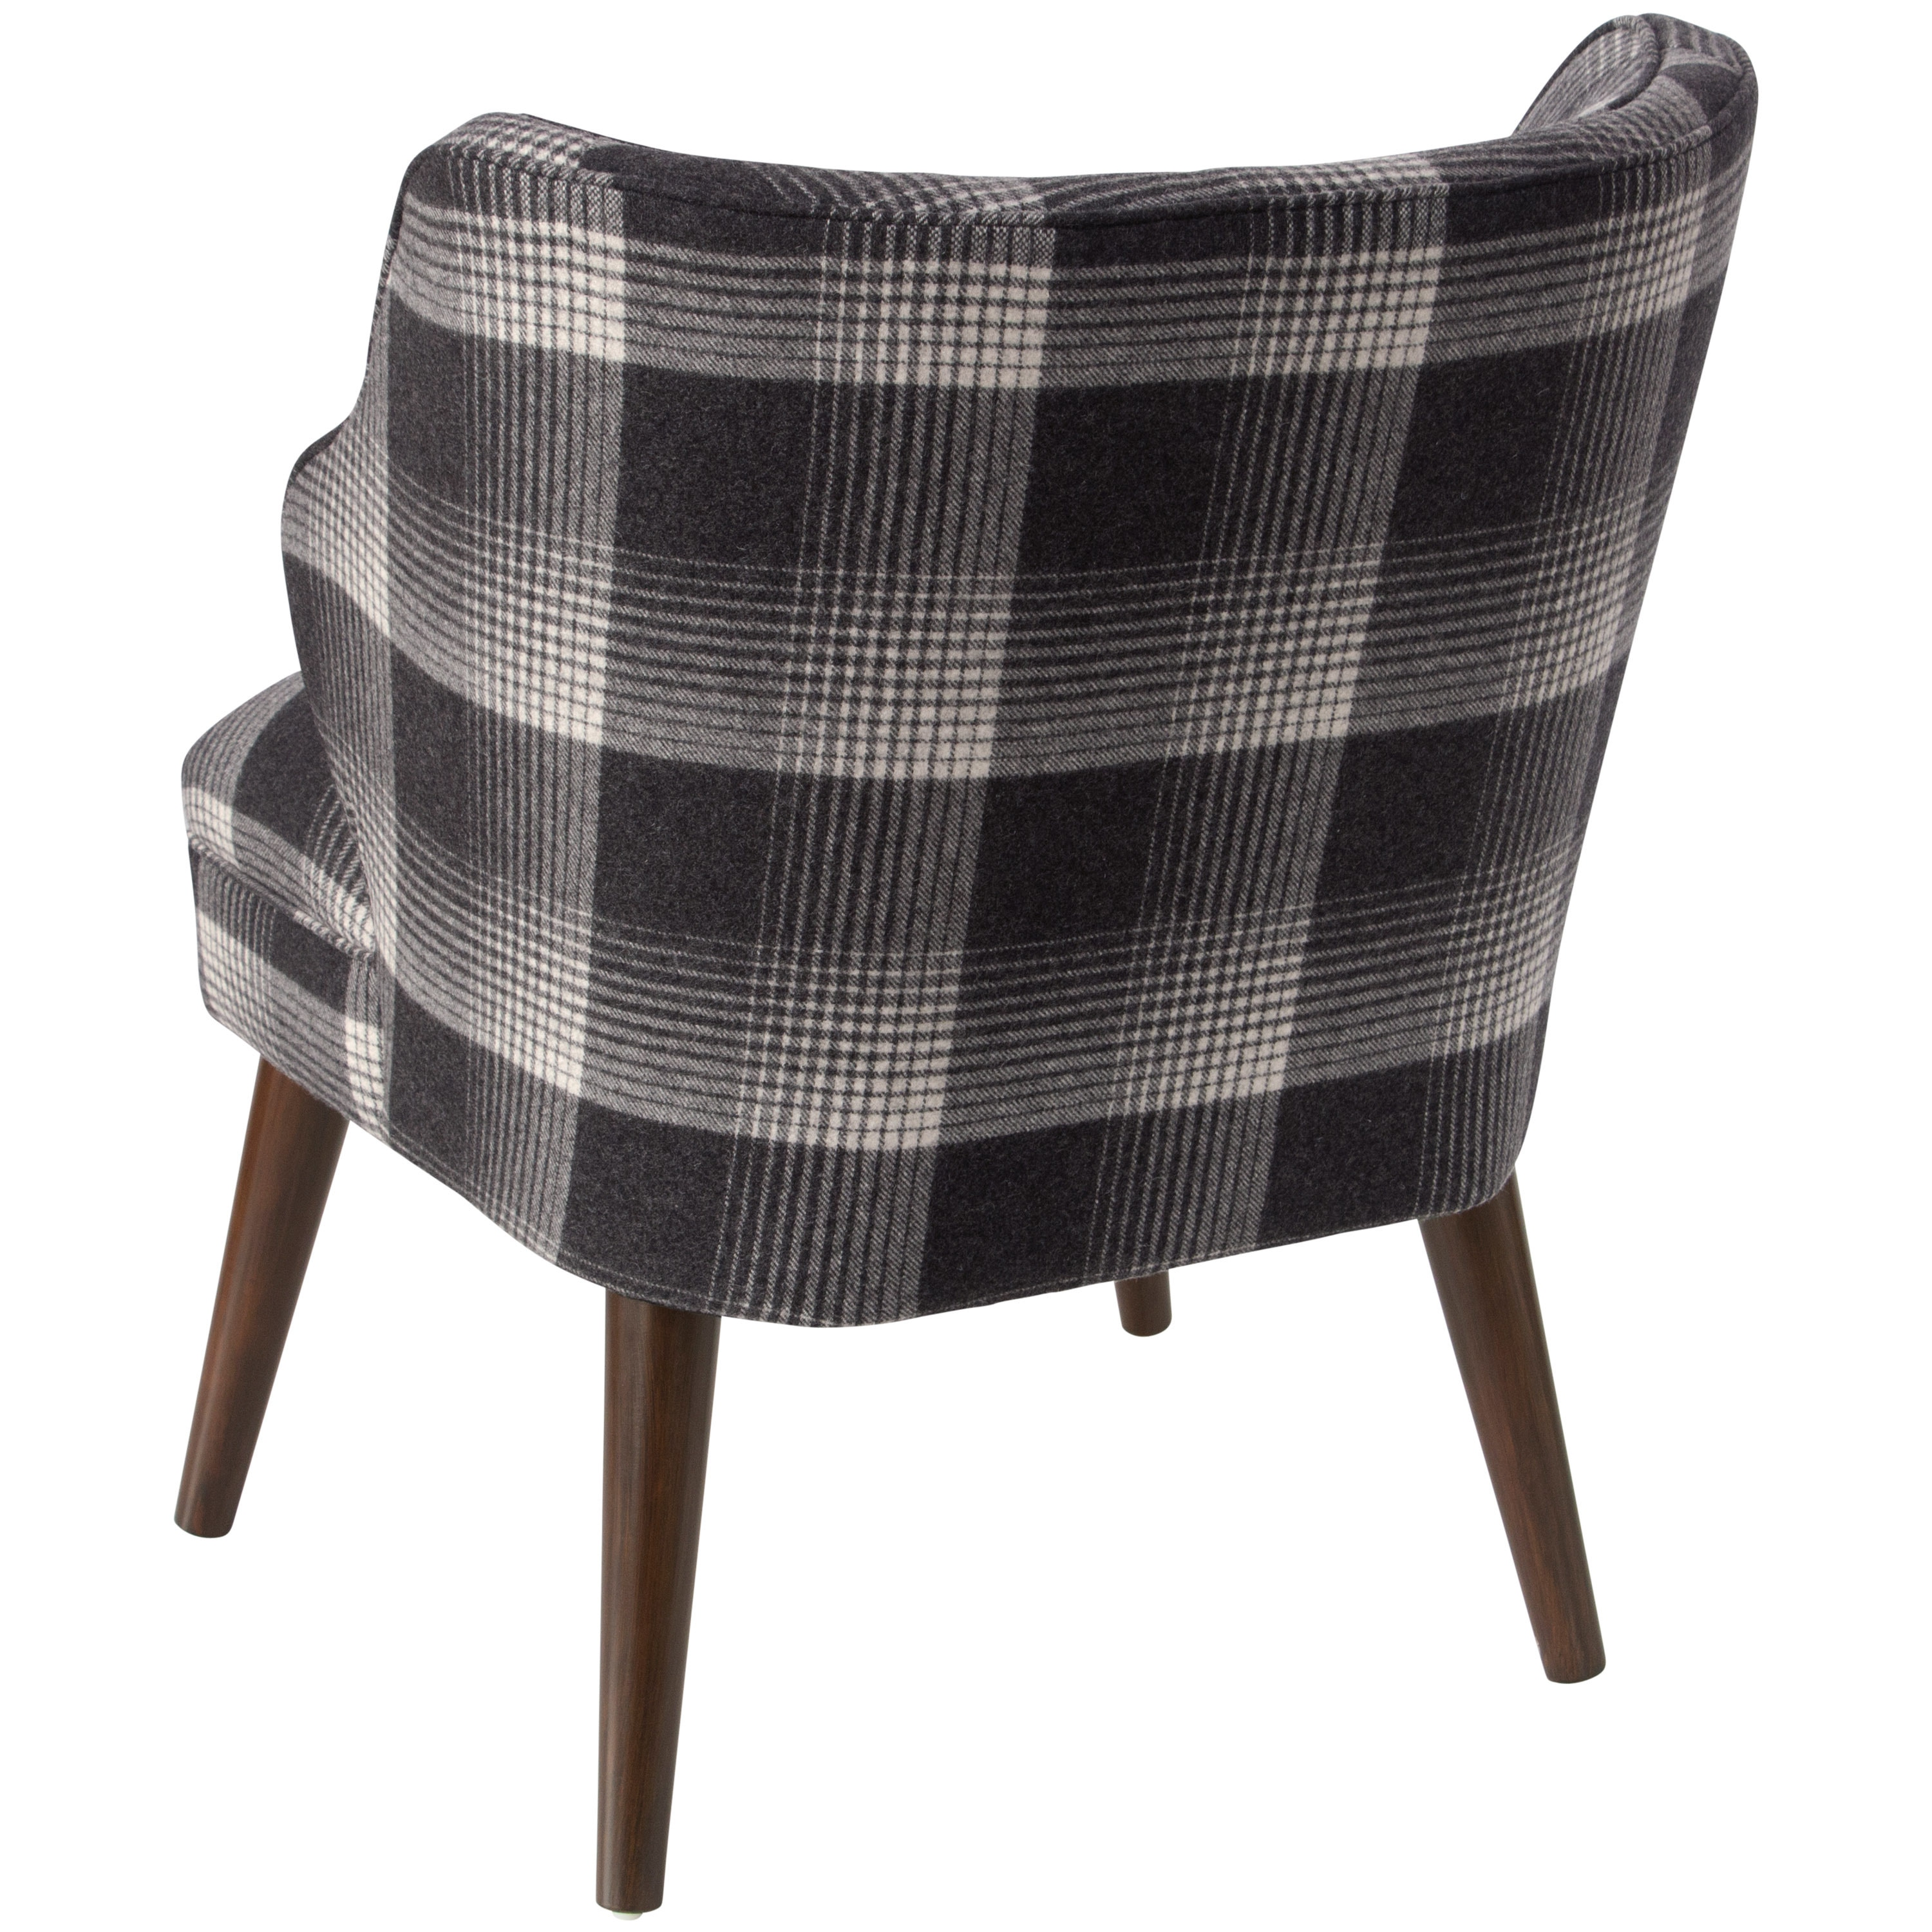 Genial Shop Skyline Furniture Aberdeen Flint Accent Chair   Free Shipping Today    Overstock.com   12858479